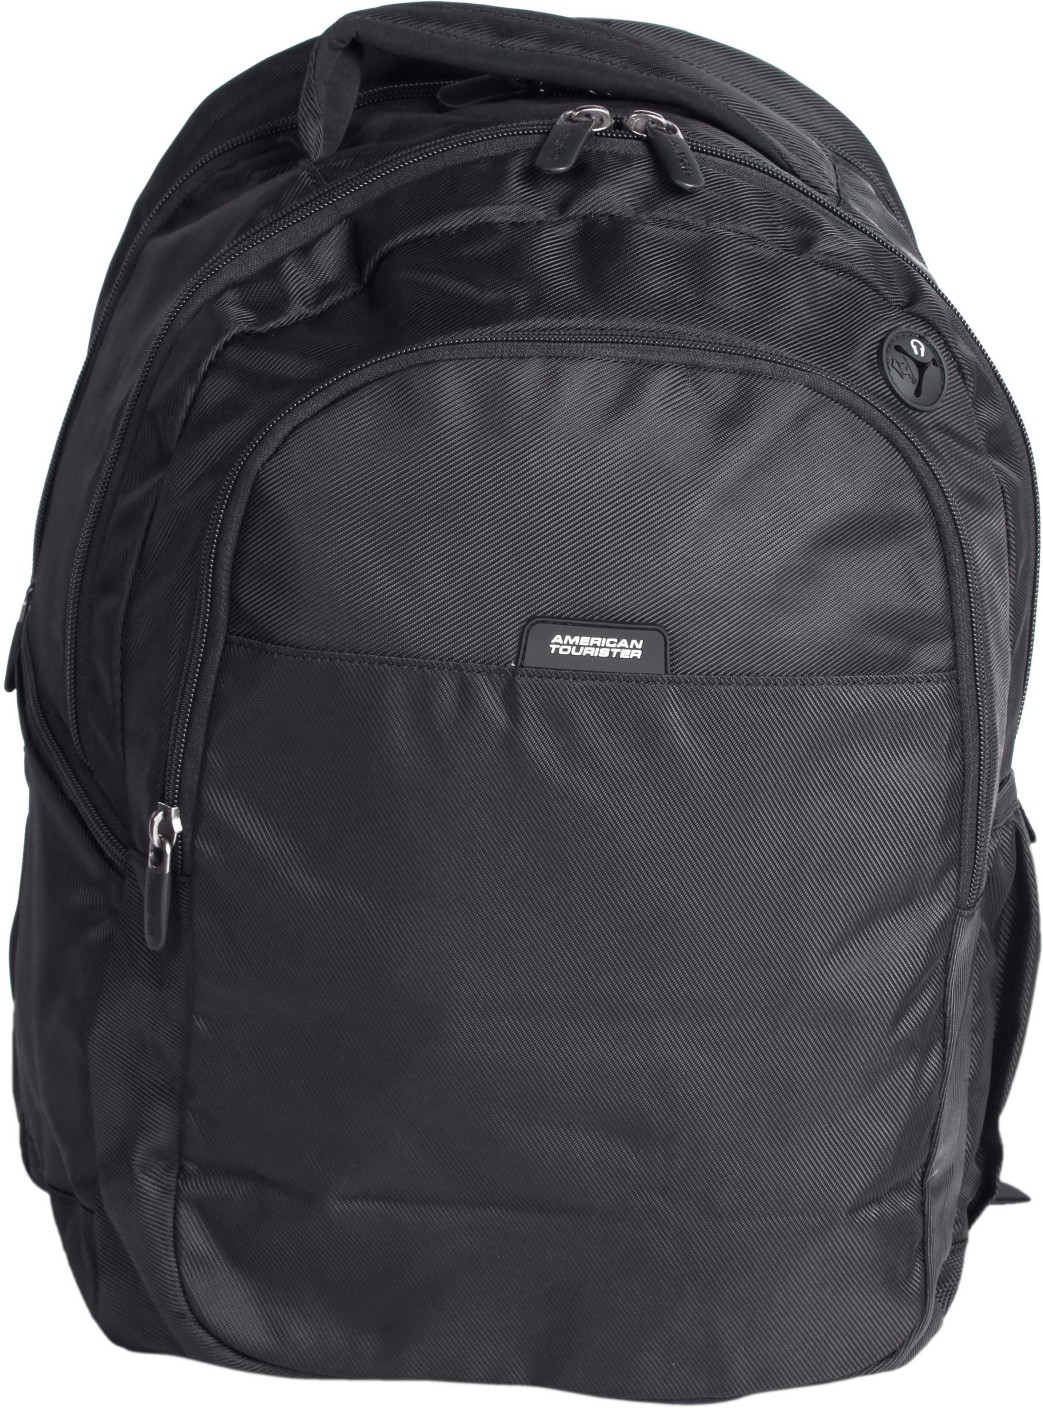 American tourister laptop backpack black price in india - American tourister office bags ...